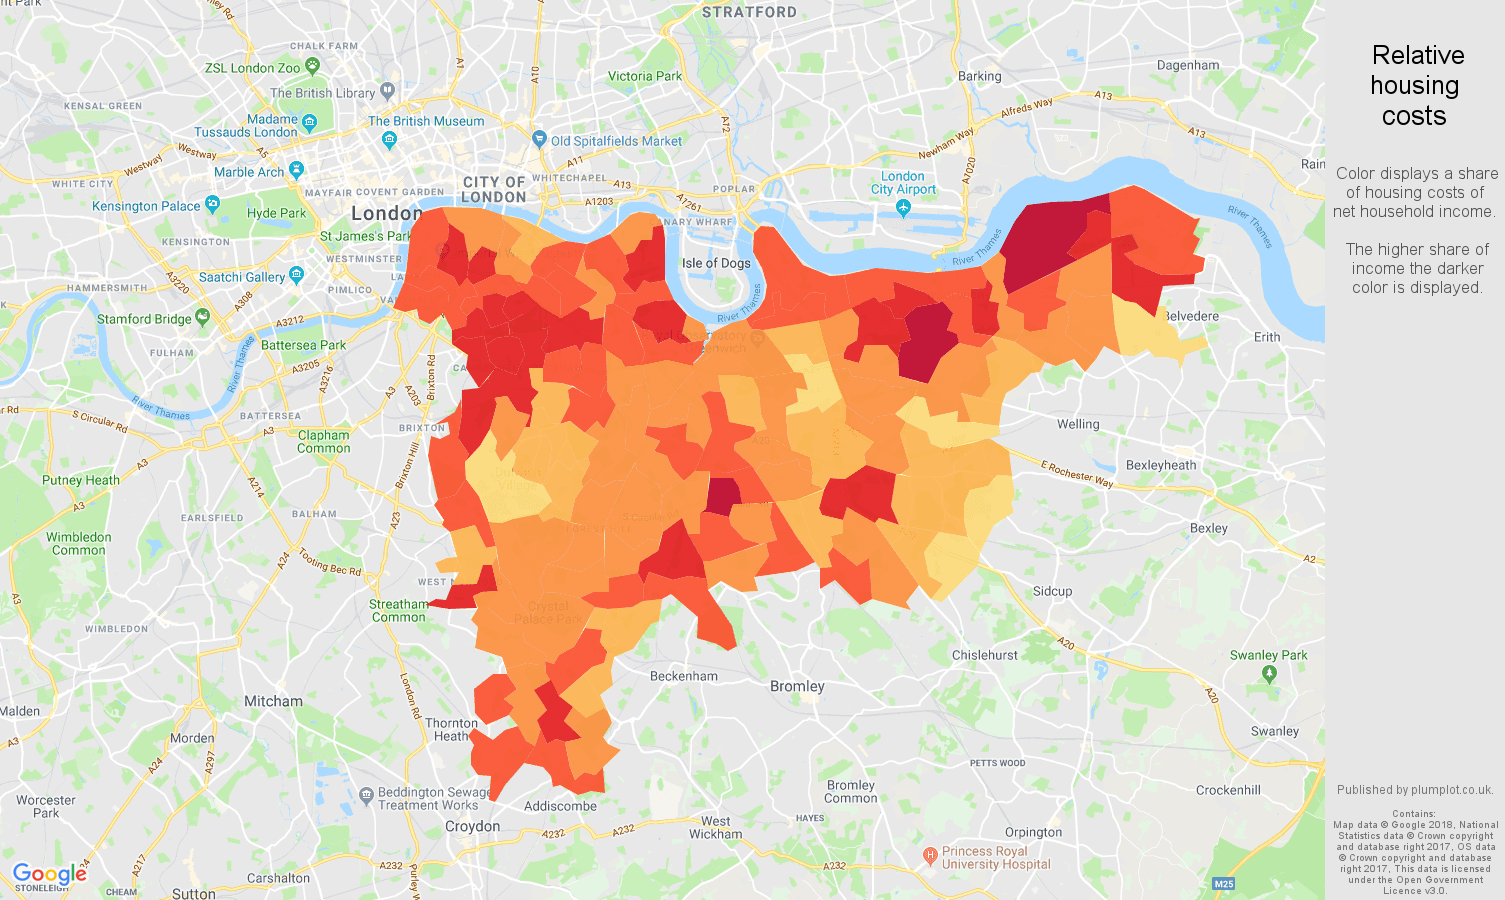 South East London relative housing costs map